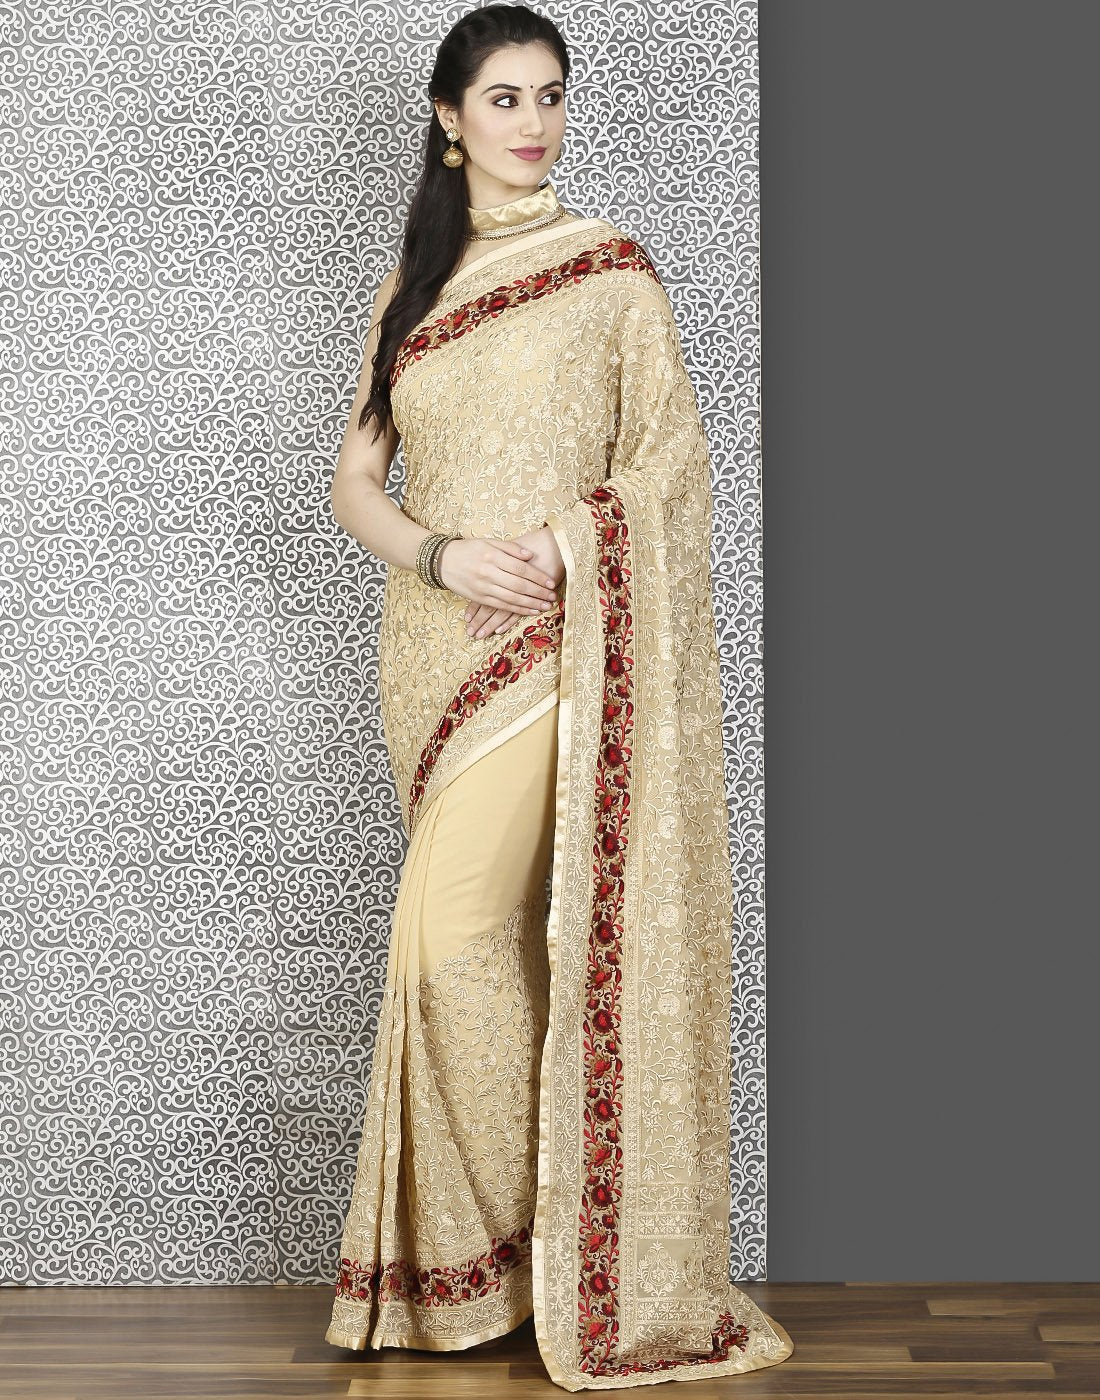 Meena Bazaar: Georgette saree with embroidery jaal